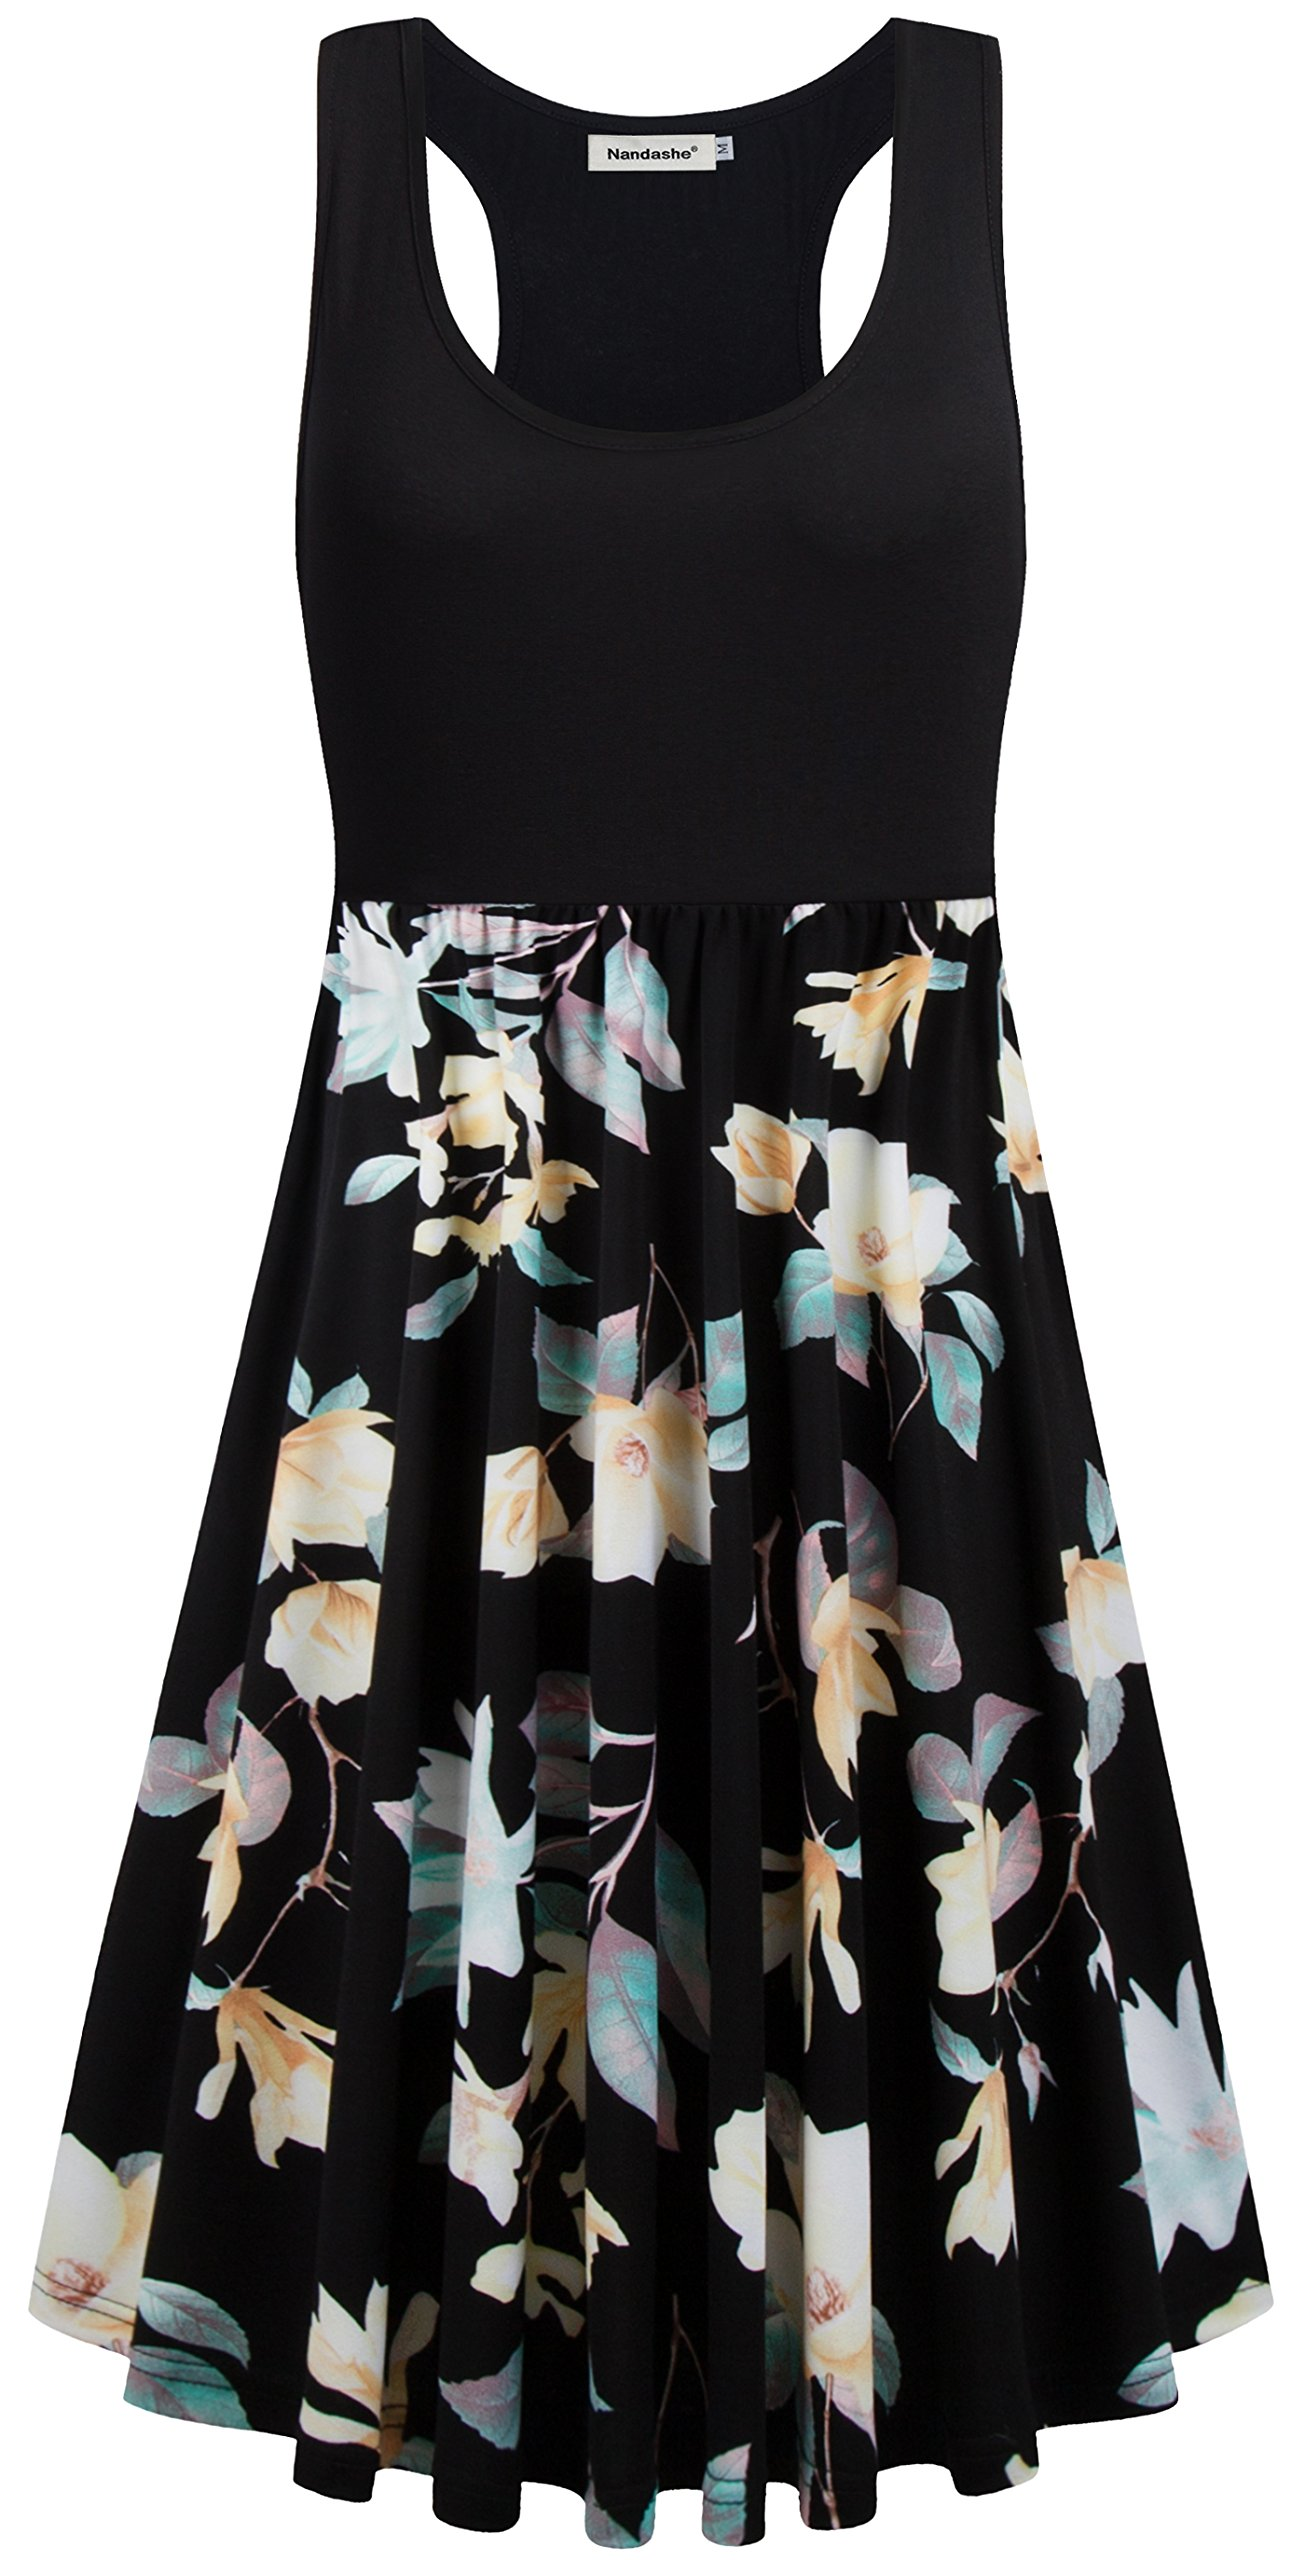 Nandashe Sleeveless Dresses for Women Plus Size, Womens Modest Colorful Flower Printed Loose Fitted Oversized Skate Flowy Wide Hem Company Business Sundress for Work Black Beige XL